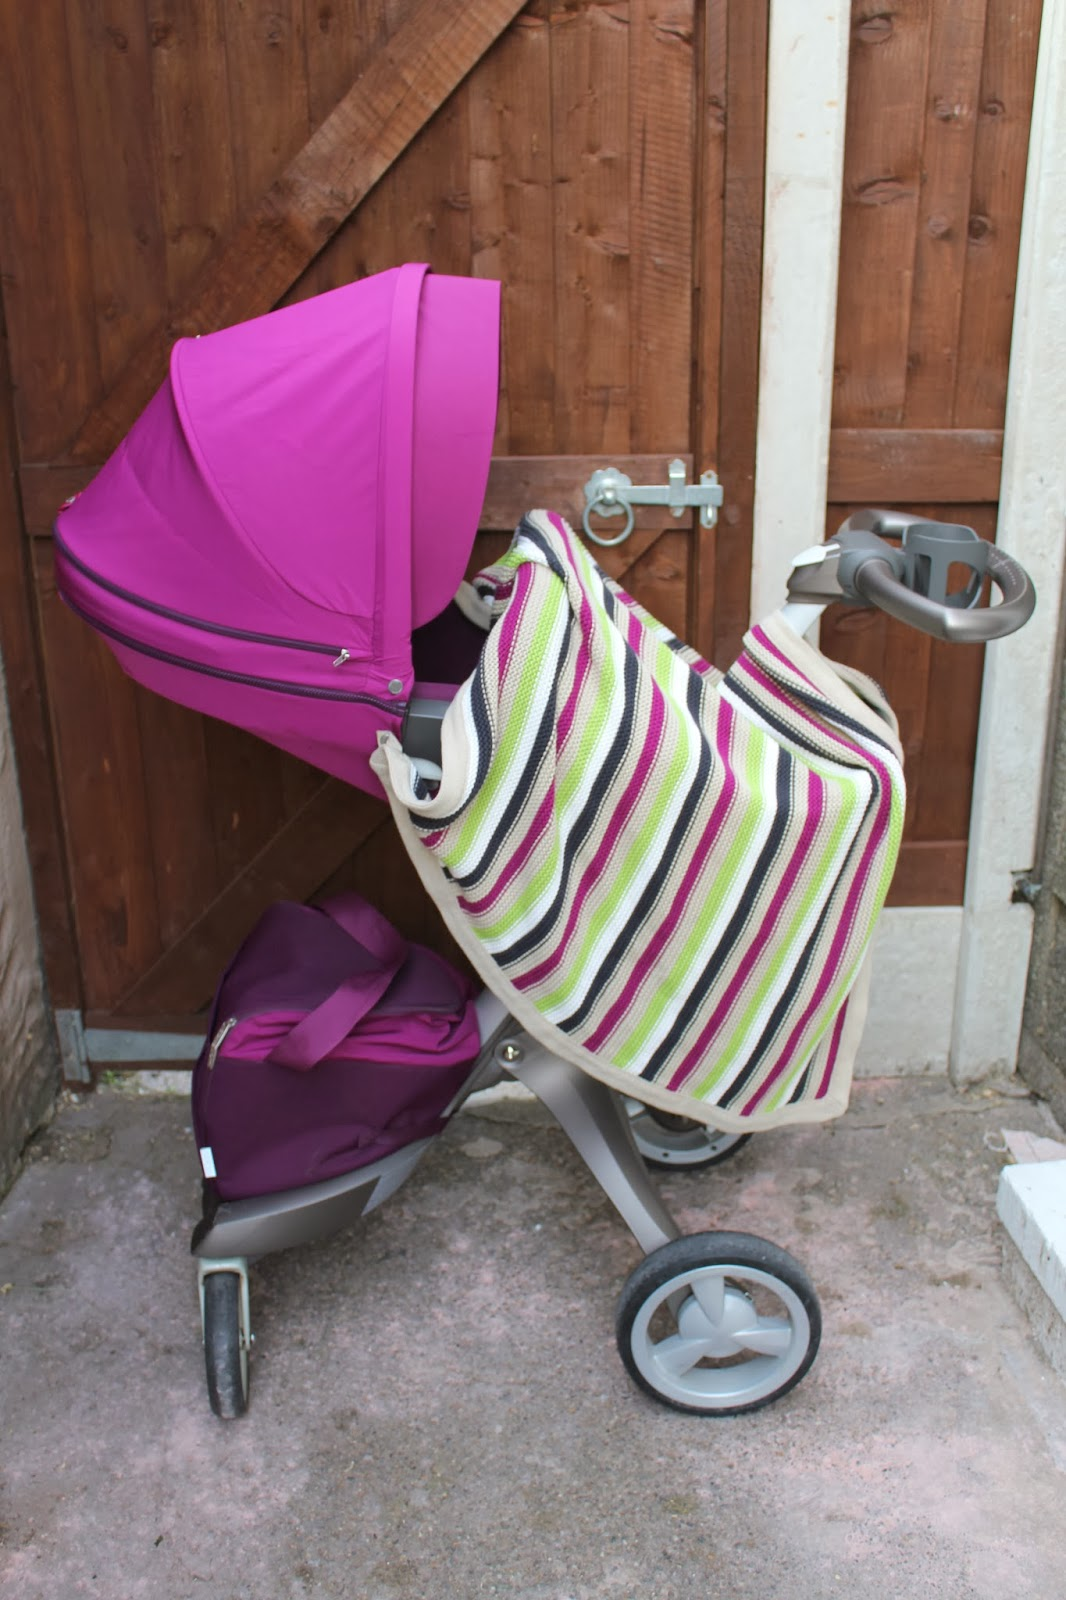 Matching stripe blanket for the purple Stokke Xplory Textiles